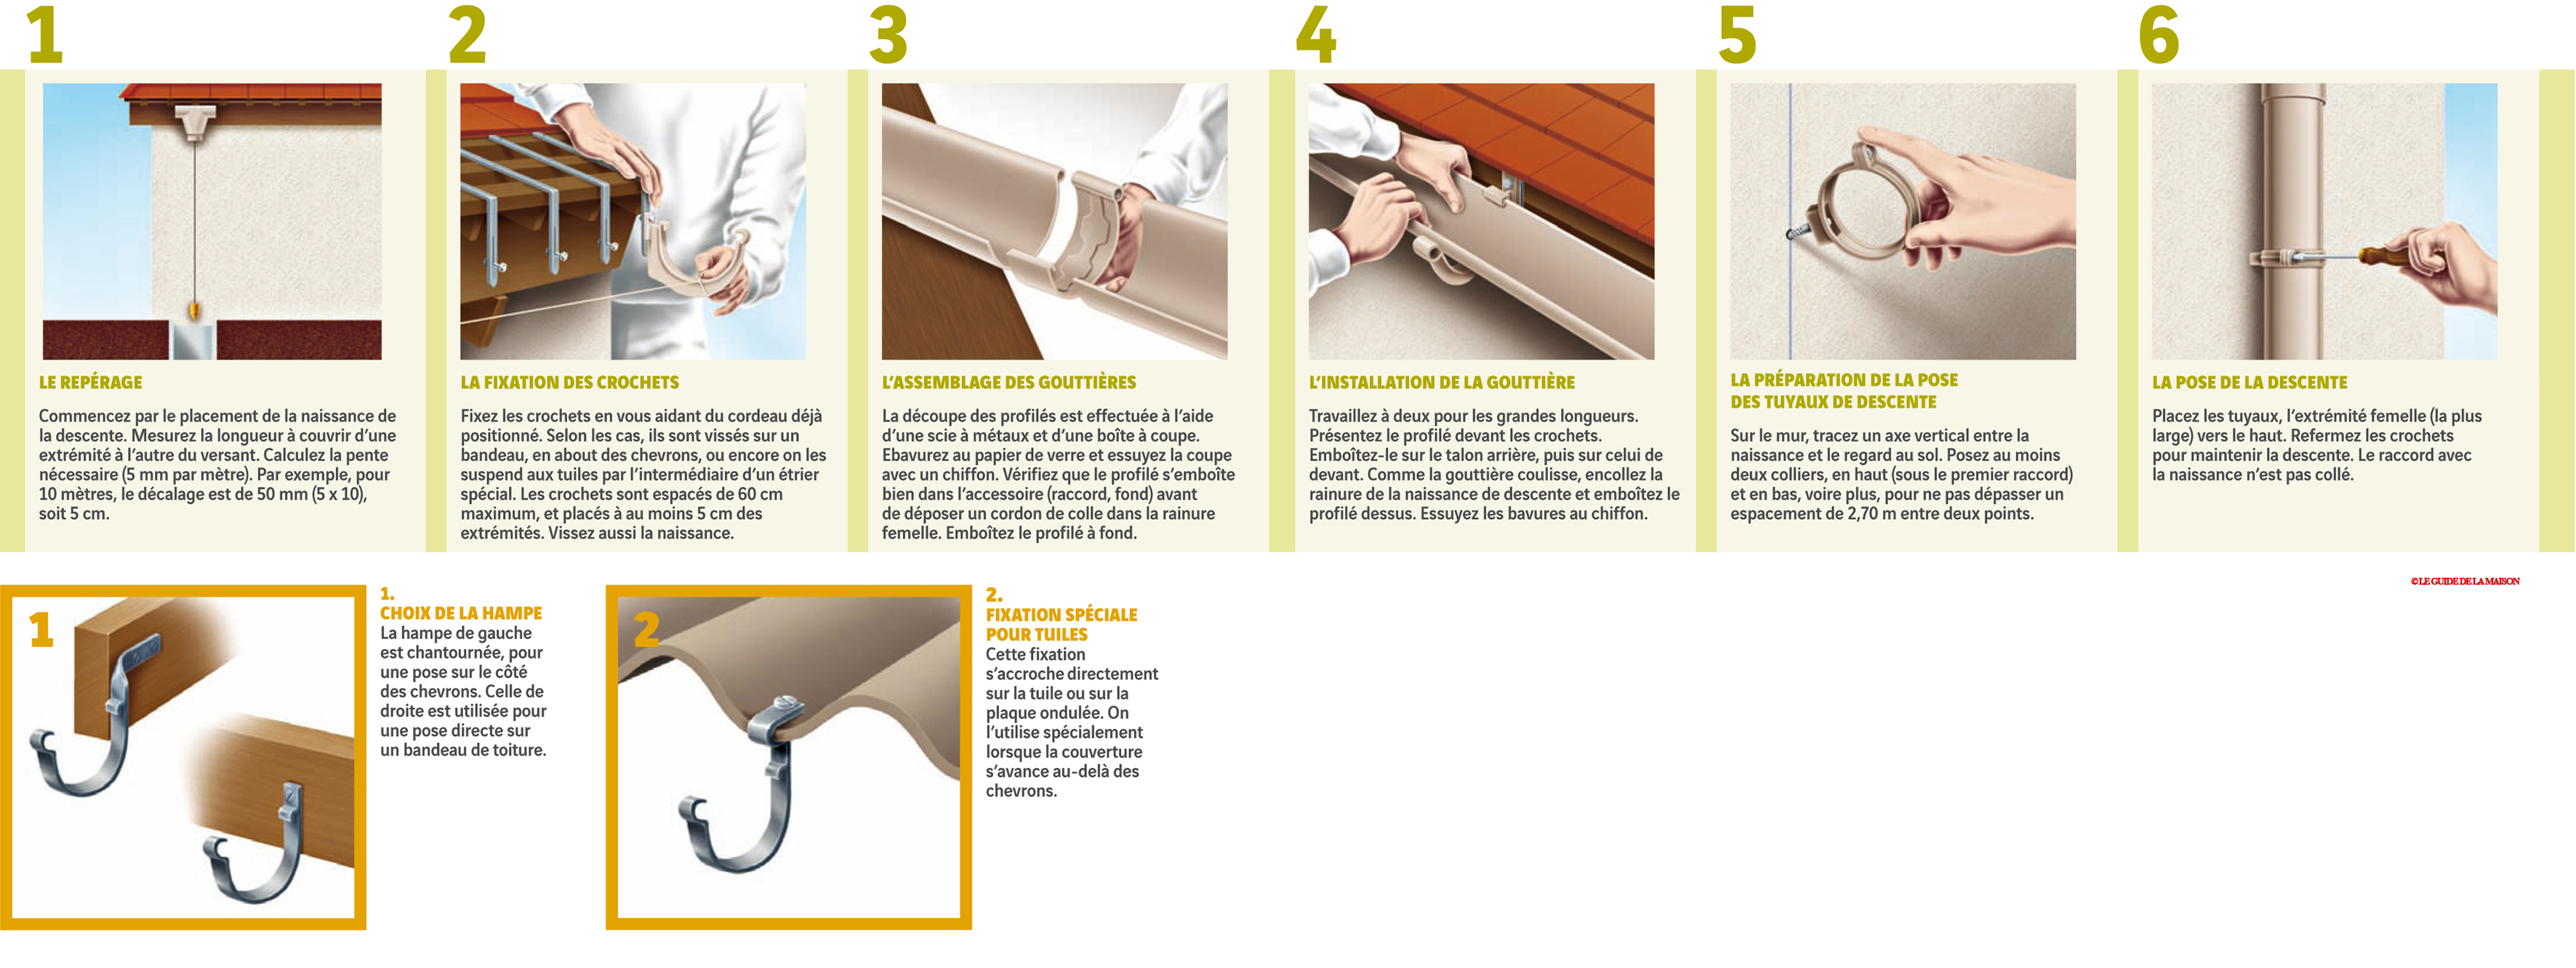 Fiche faire poser une goutti re en pvc le guide de la for Pose d une gouttiere en zinc